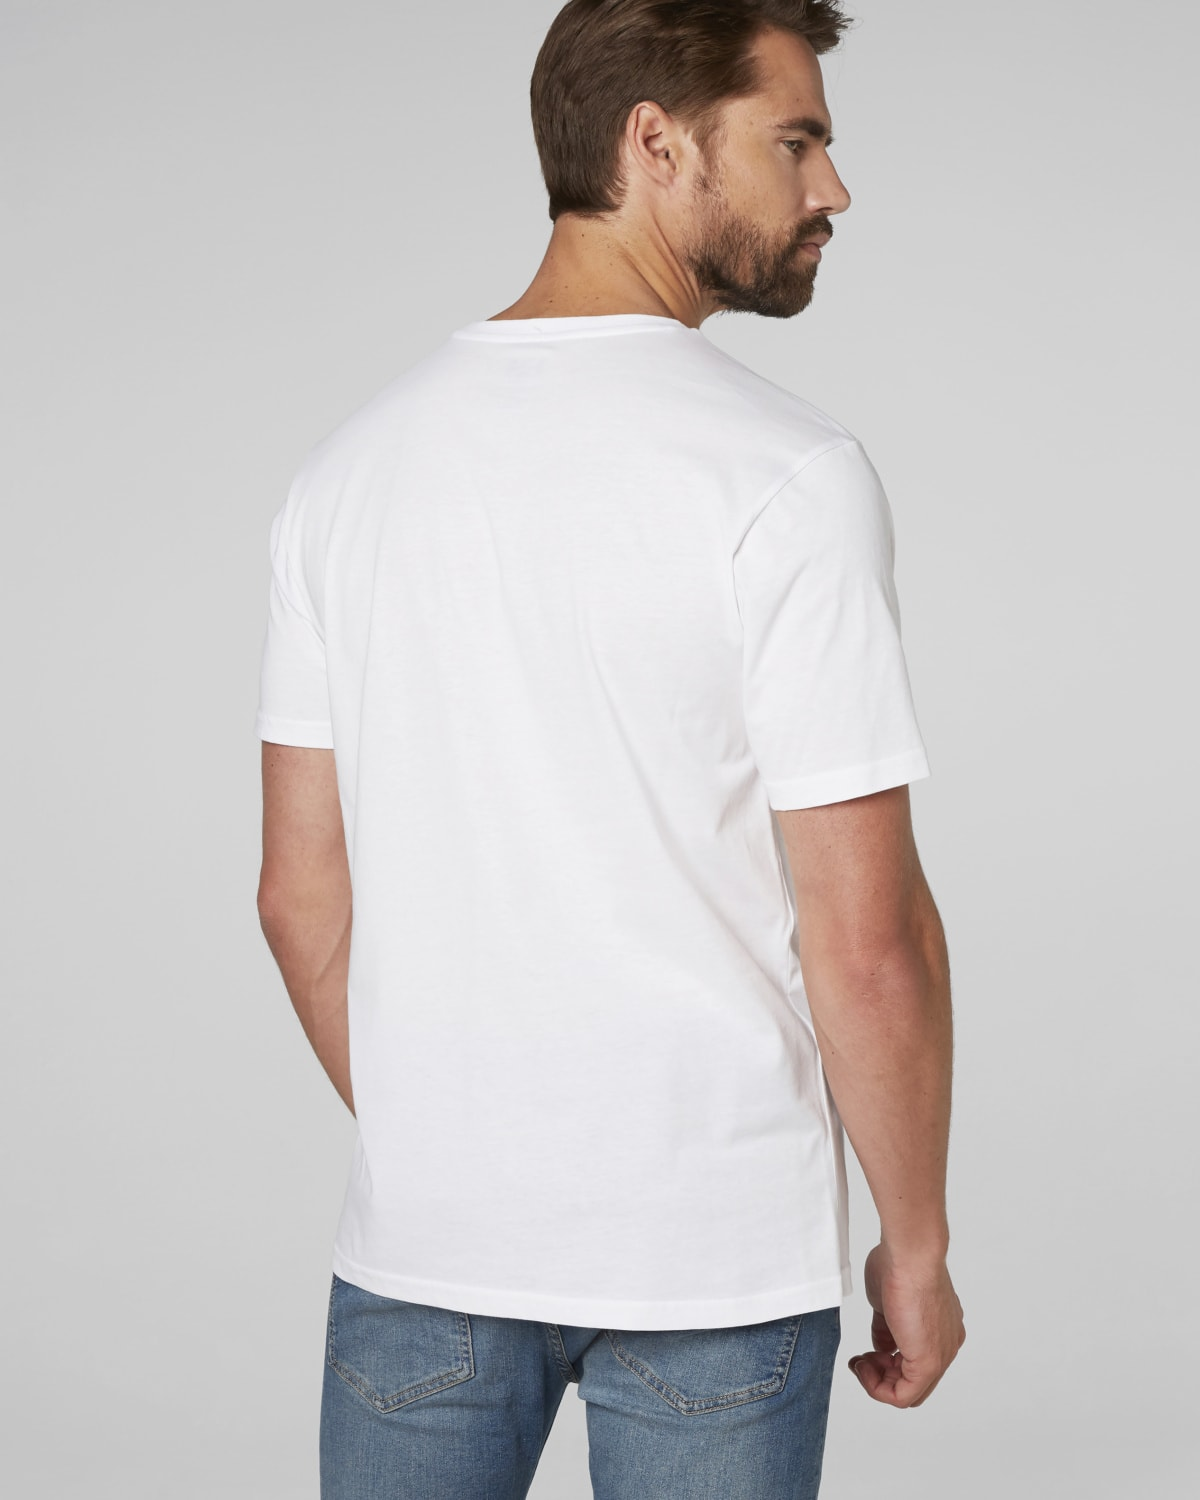 Helly Hansen Logo T-Shirt 33979_001_onbody2